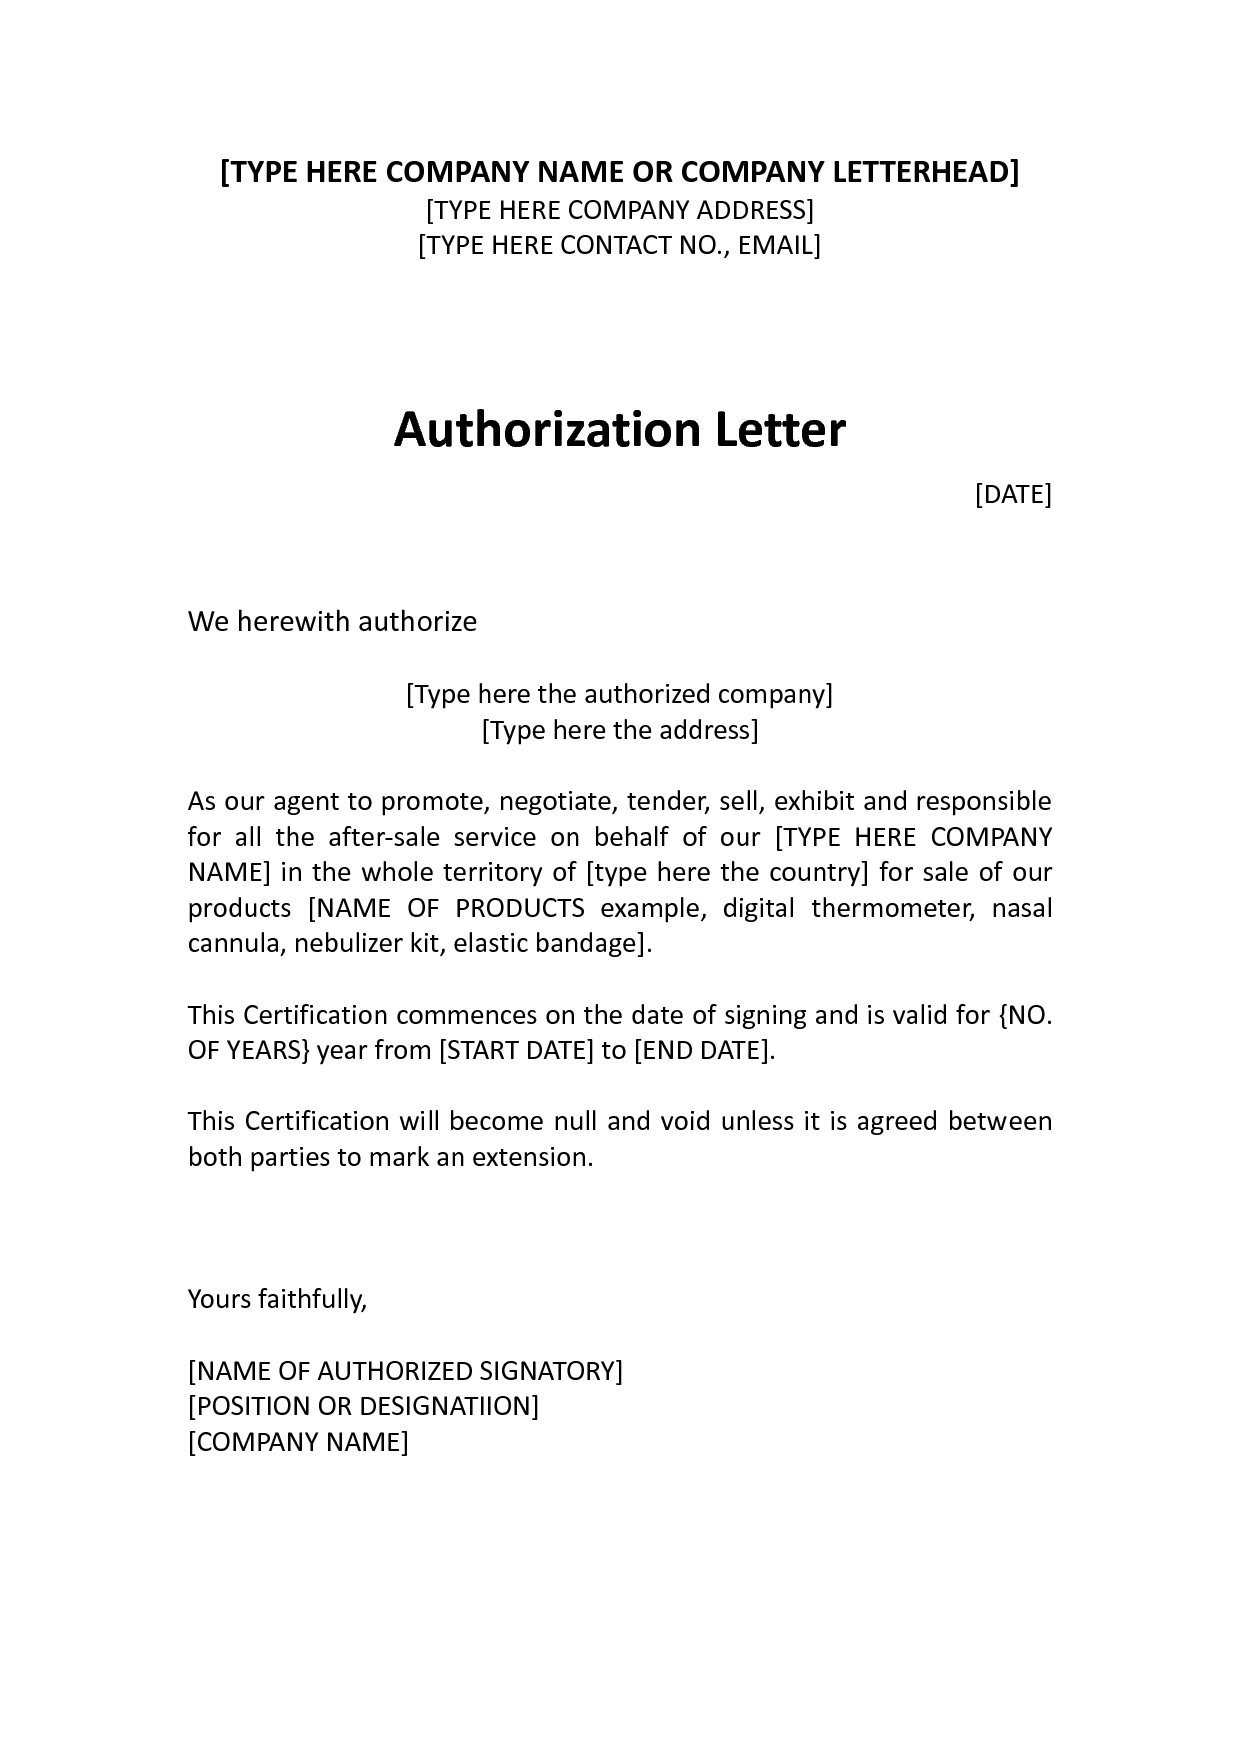 Letter Of Intent to Sell Business Template - Authorization Distributor Letter Sample Distributor Dealer